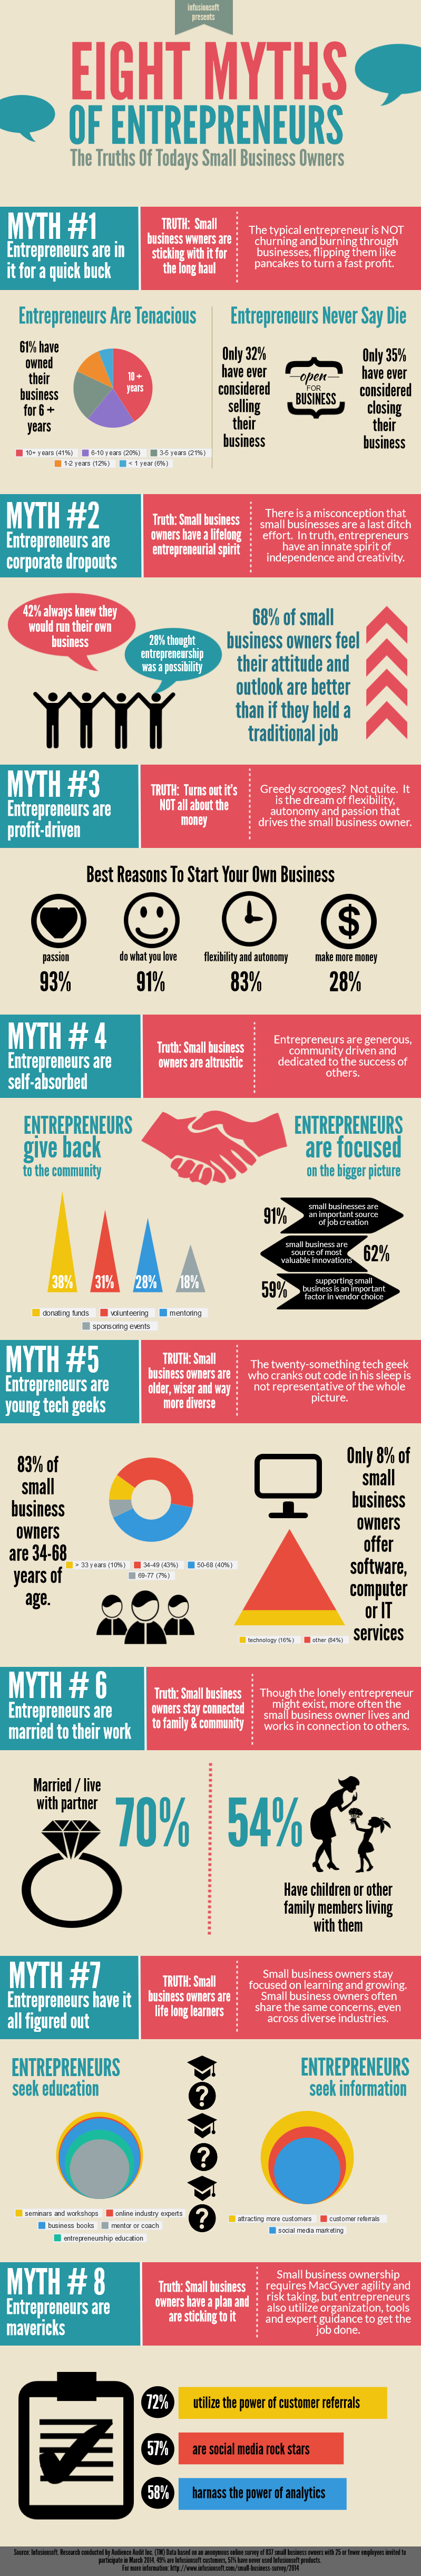 8-Myths-Of-Entrepreneurship-Infographic-1.png